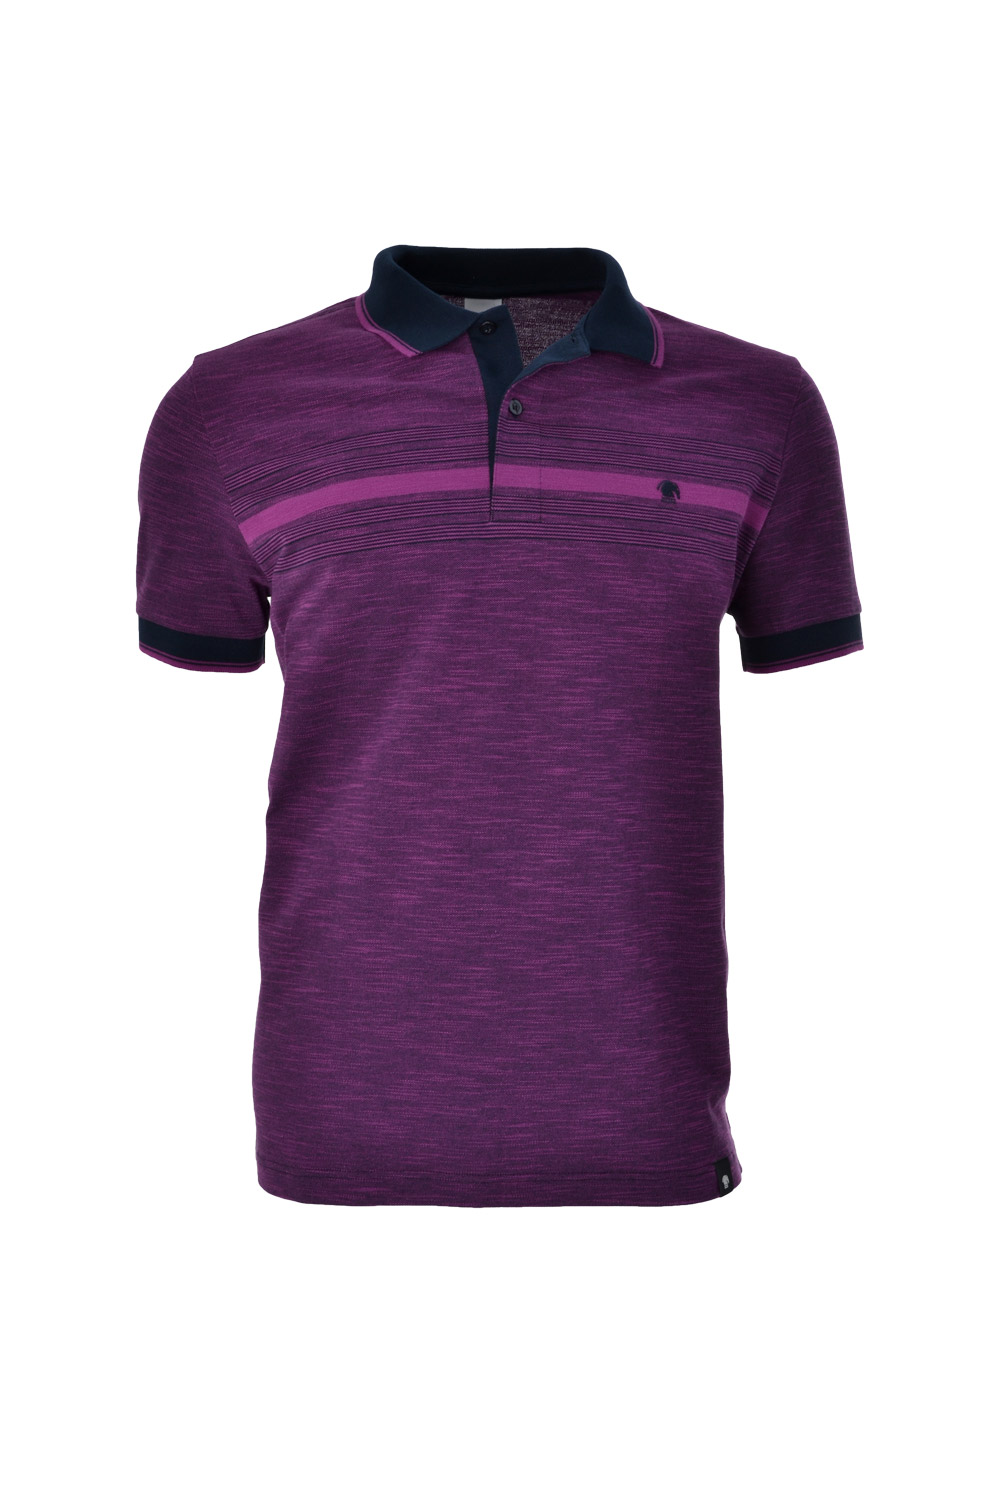 POLO MC CASUAL SLIM ALGODAO & ELASTANO STRETCH PIQUET ROXO ESCURO